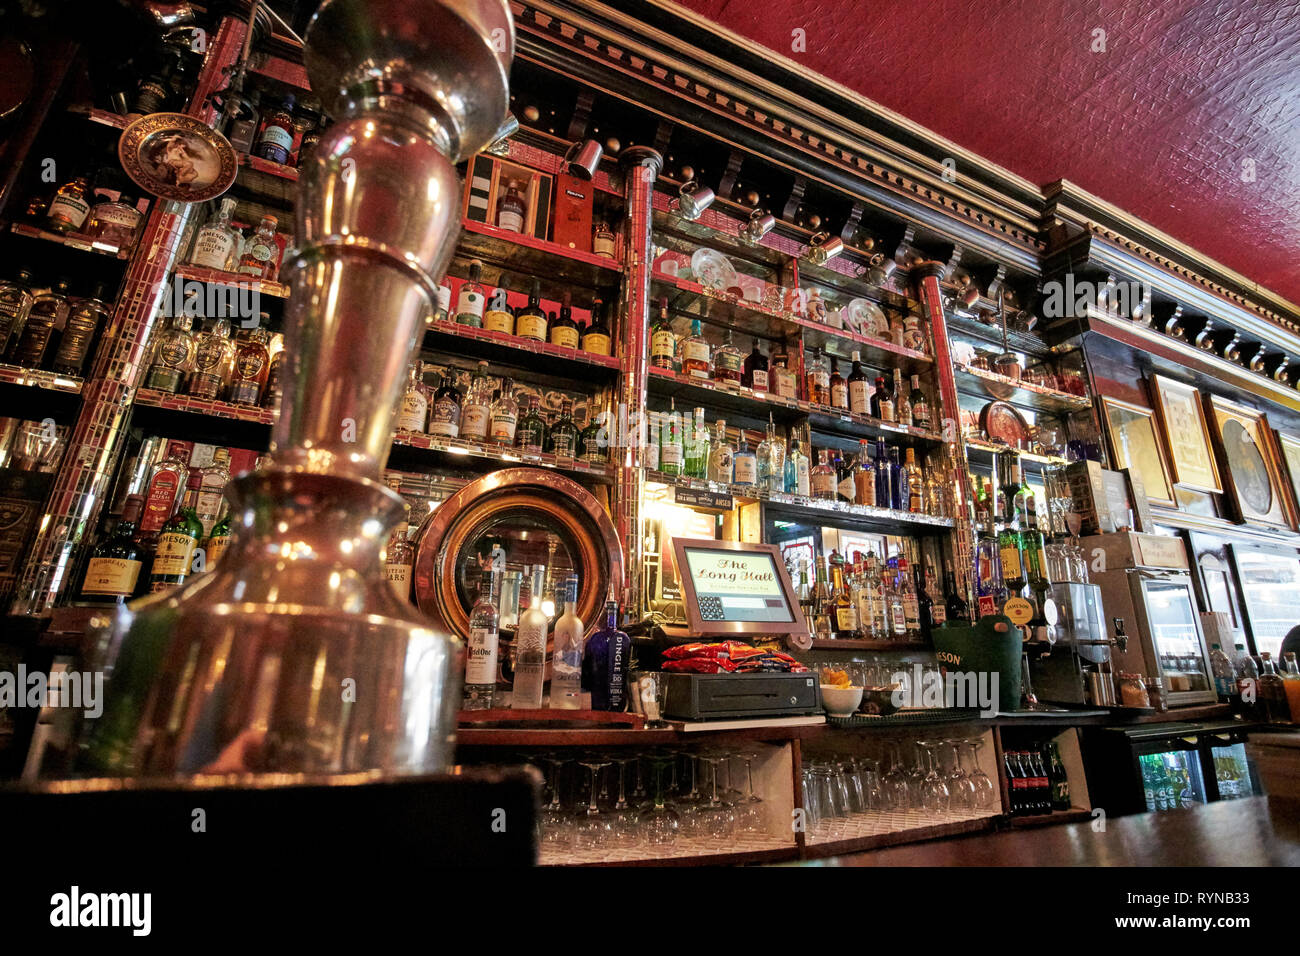 draft beer pumps in The Long Hall victorian pub one of the oldest pubs in Dublin republic of Ireland - Stock Image